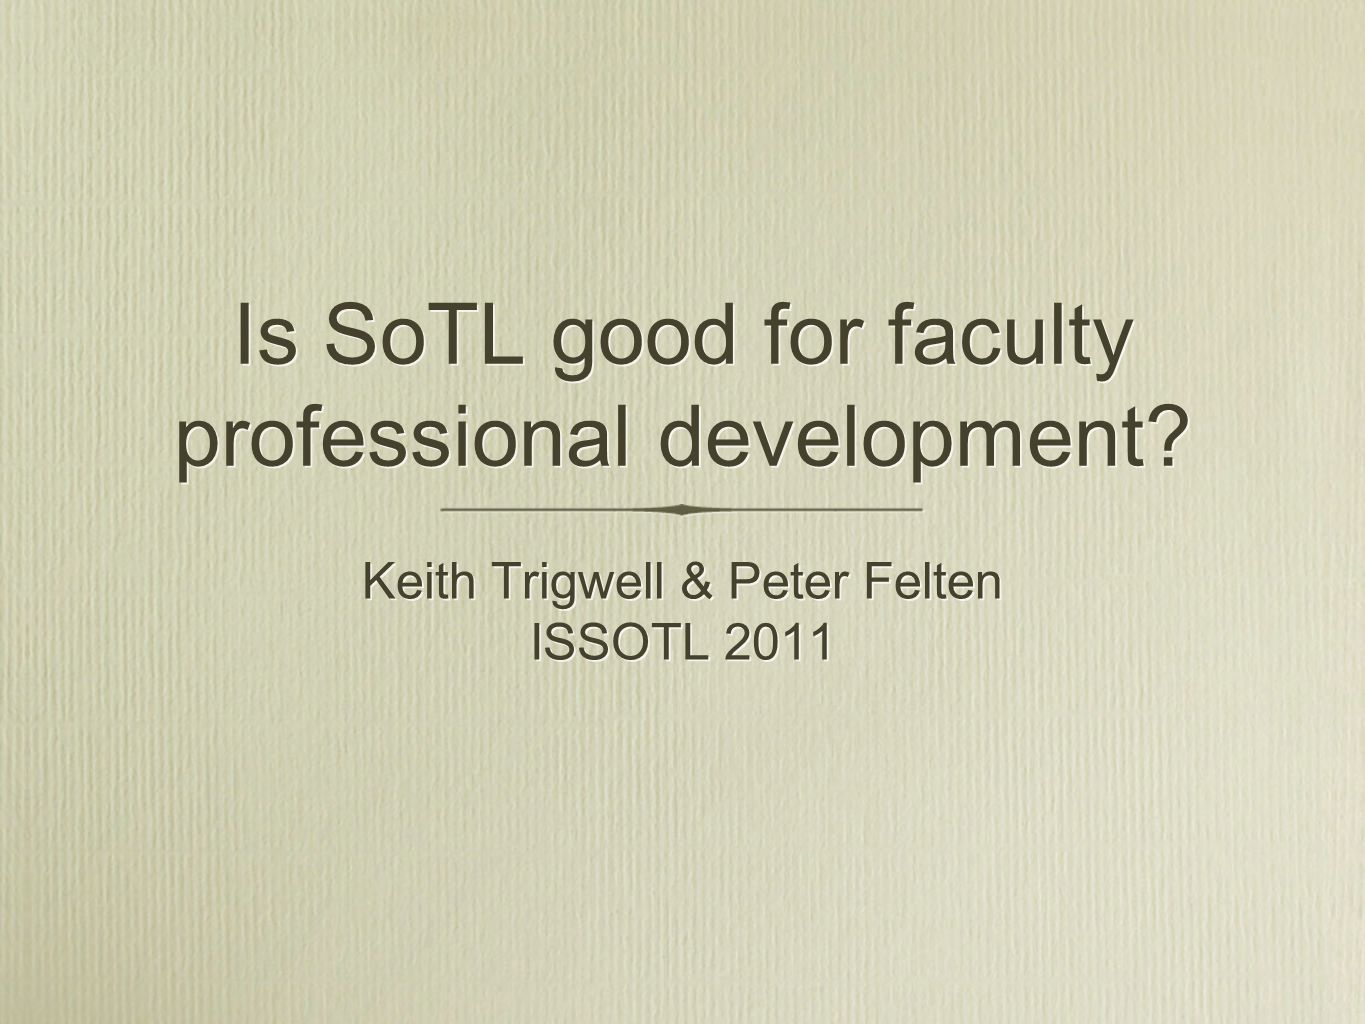 Is SoTL good for faculty professional development